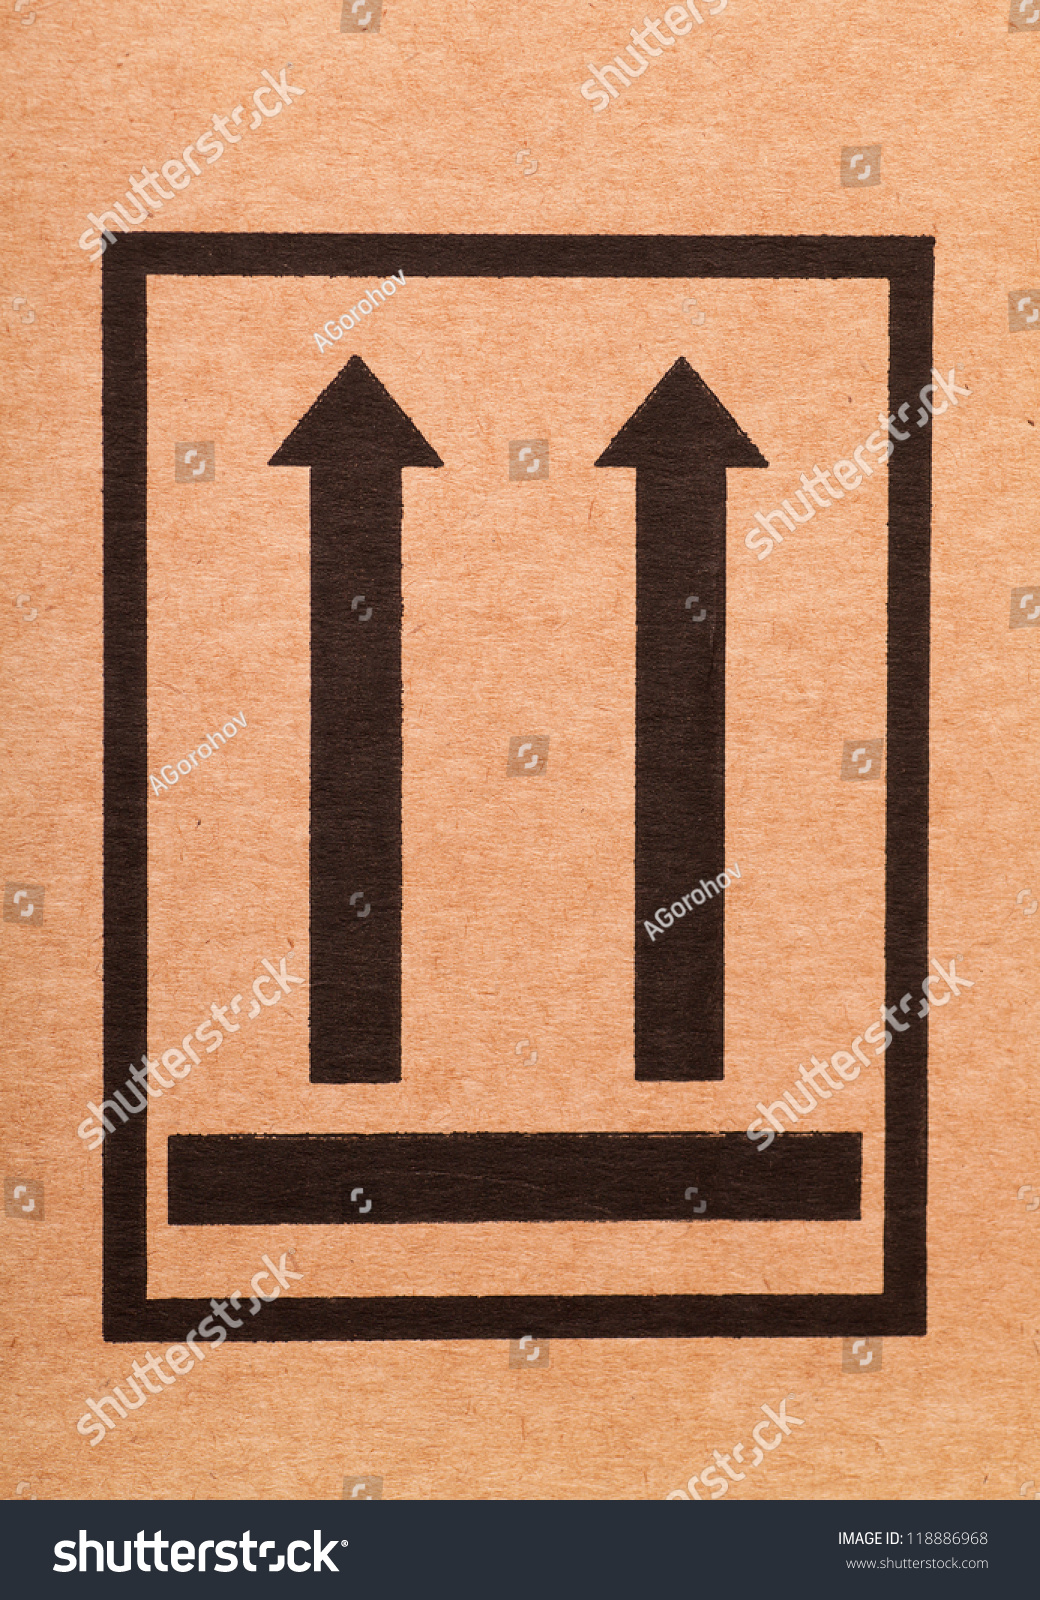 This Side Up Sign On Cardboard Stock Photo 118886968